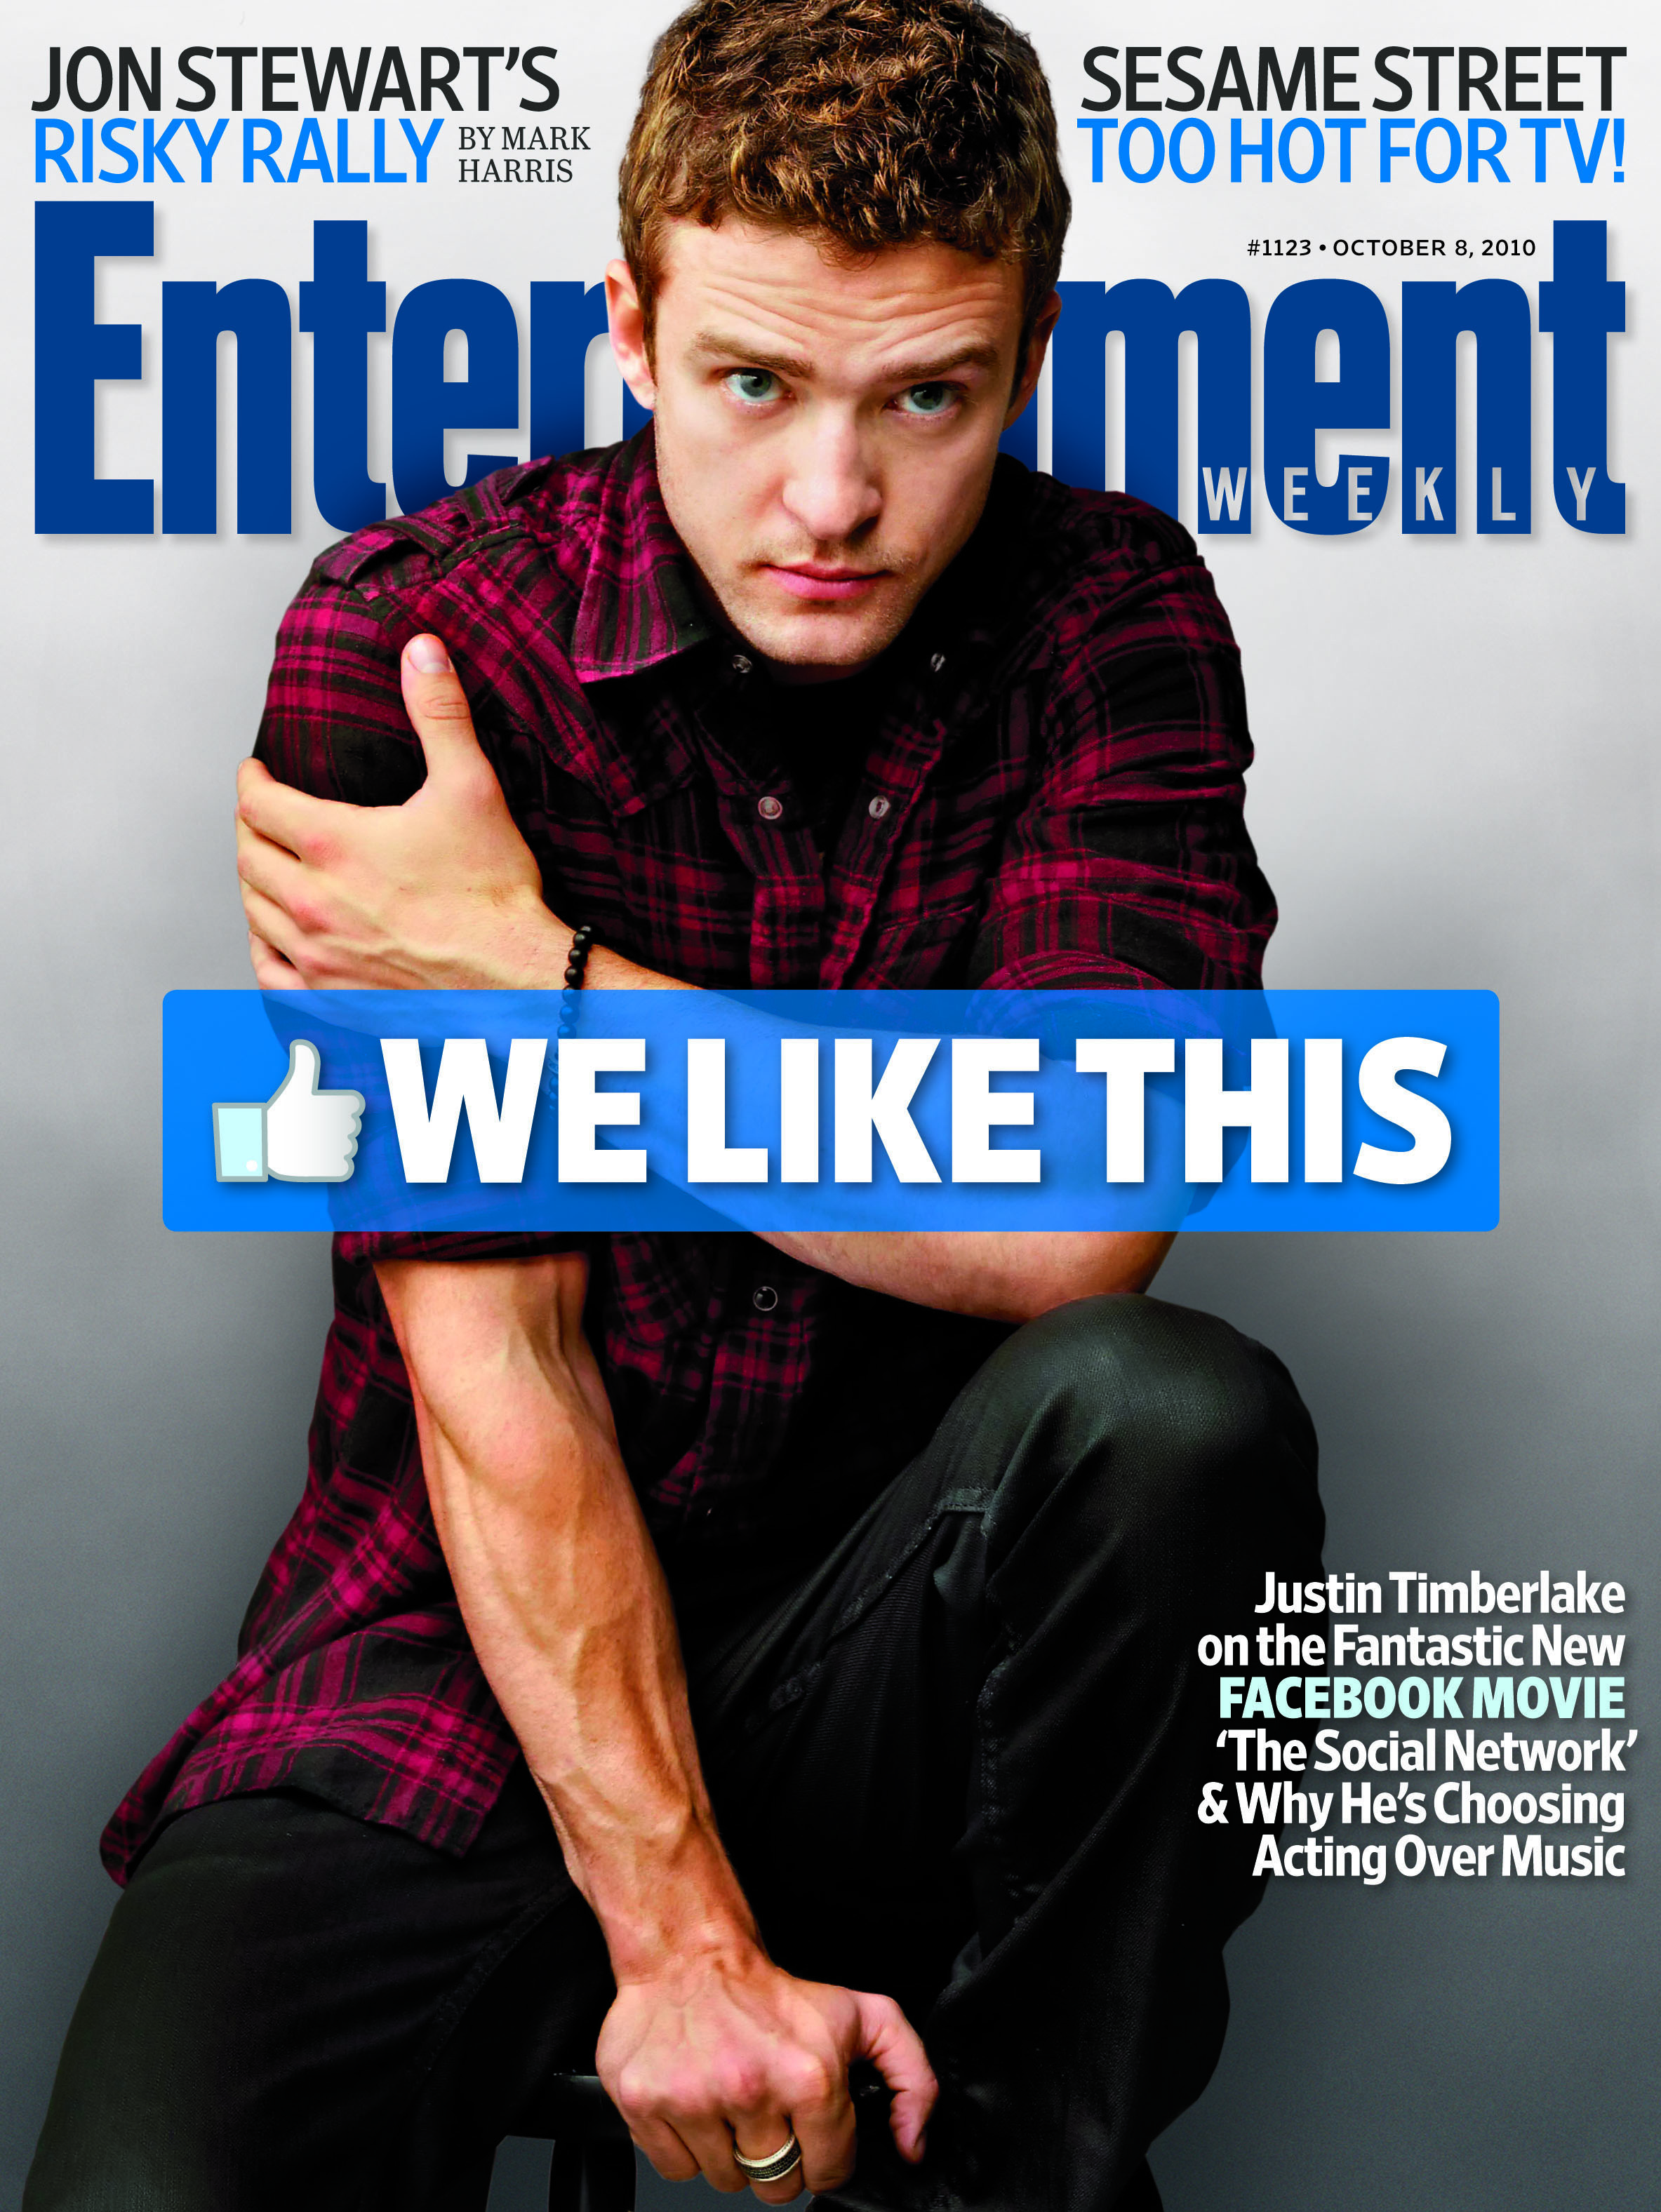 Justin Timberlake for The Social Network